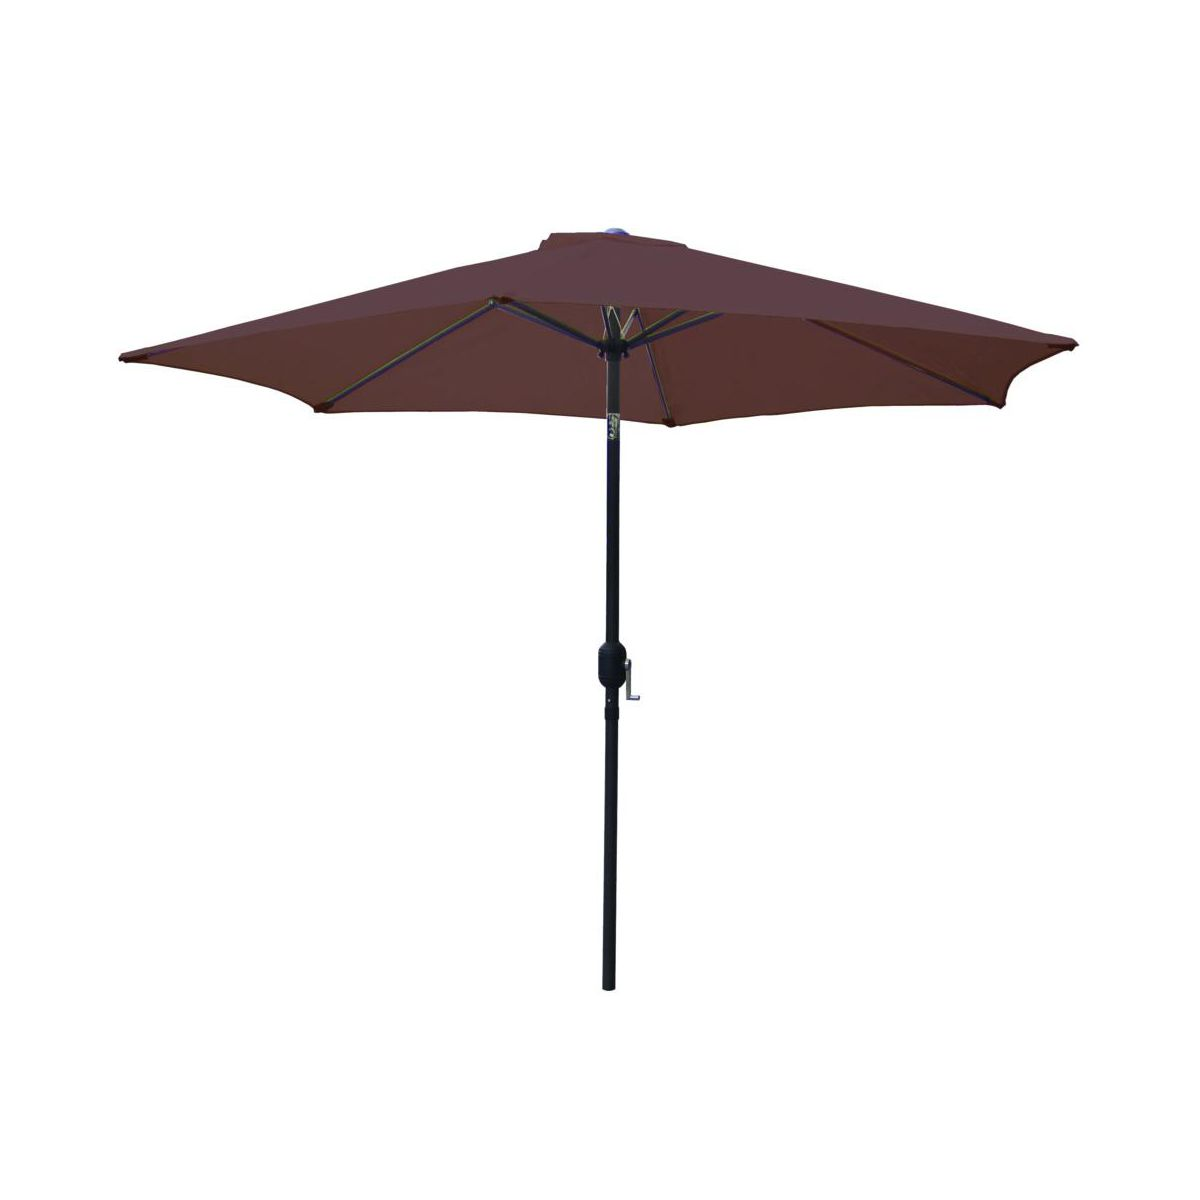 parasol deporte rectangulaire leroy merlin parasol deporte 3x4 parasol balcon l o vert anis. Black Bedroom Furniture Sets. Home Design Ideas